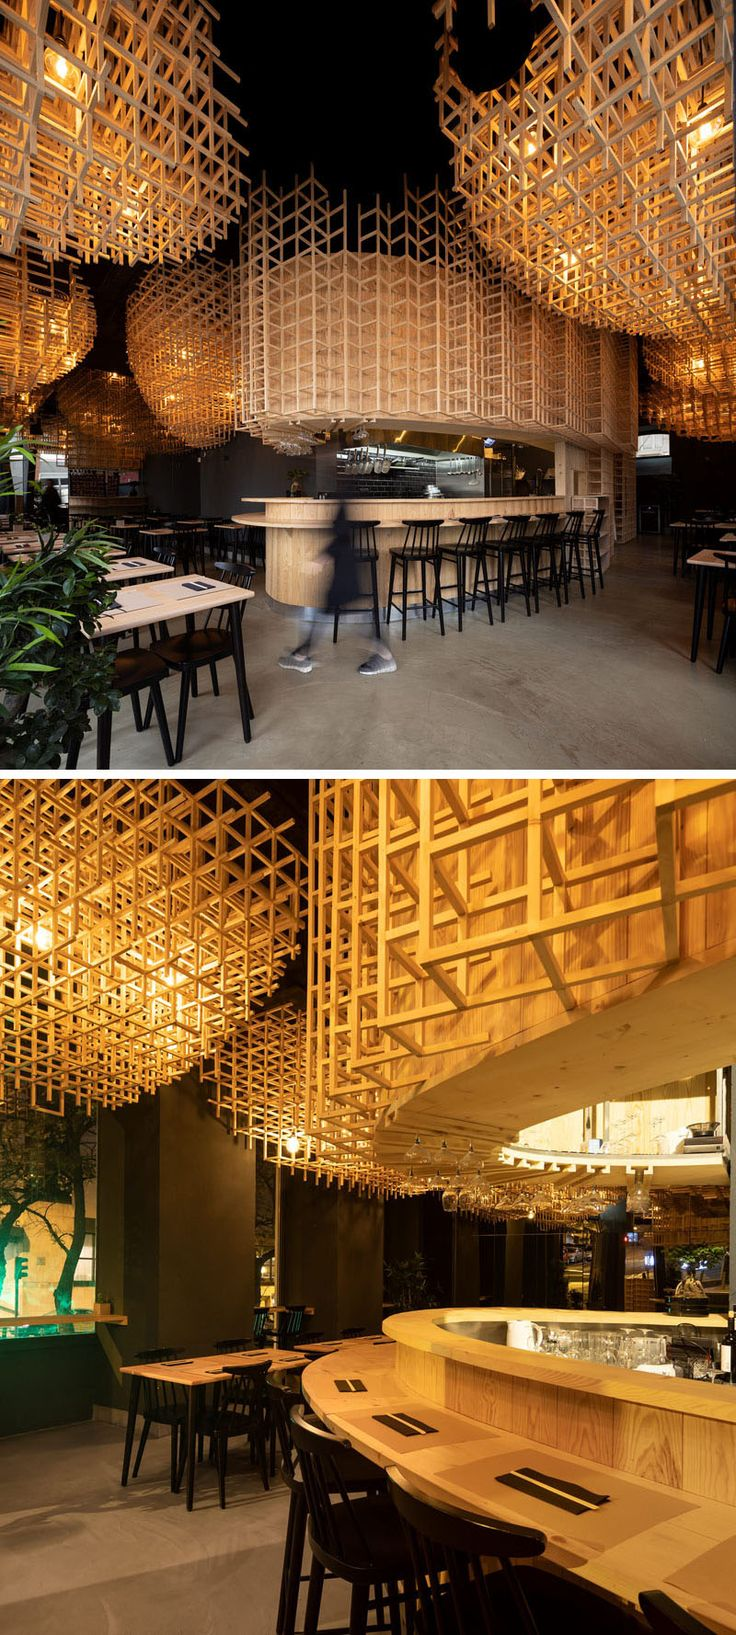 Large Sculptural Lights Create A Warm Atmosphere In This Ramen Restaurant